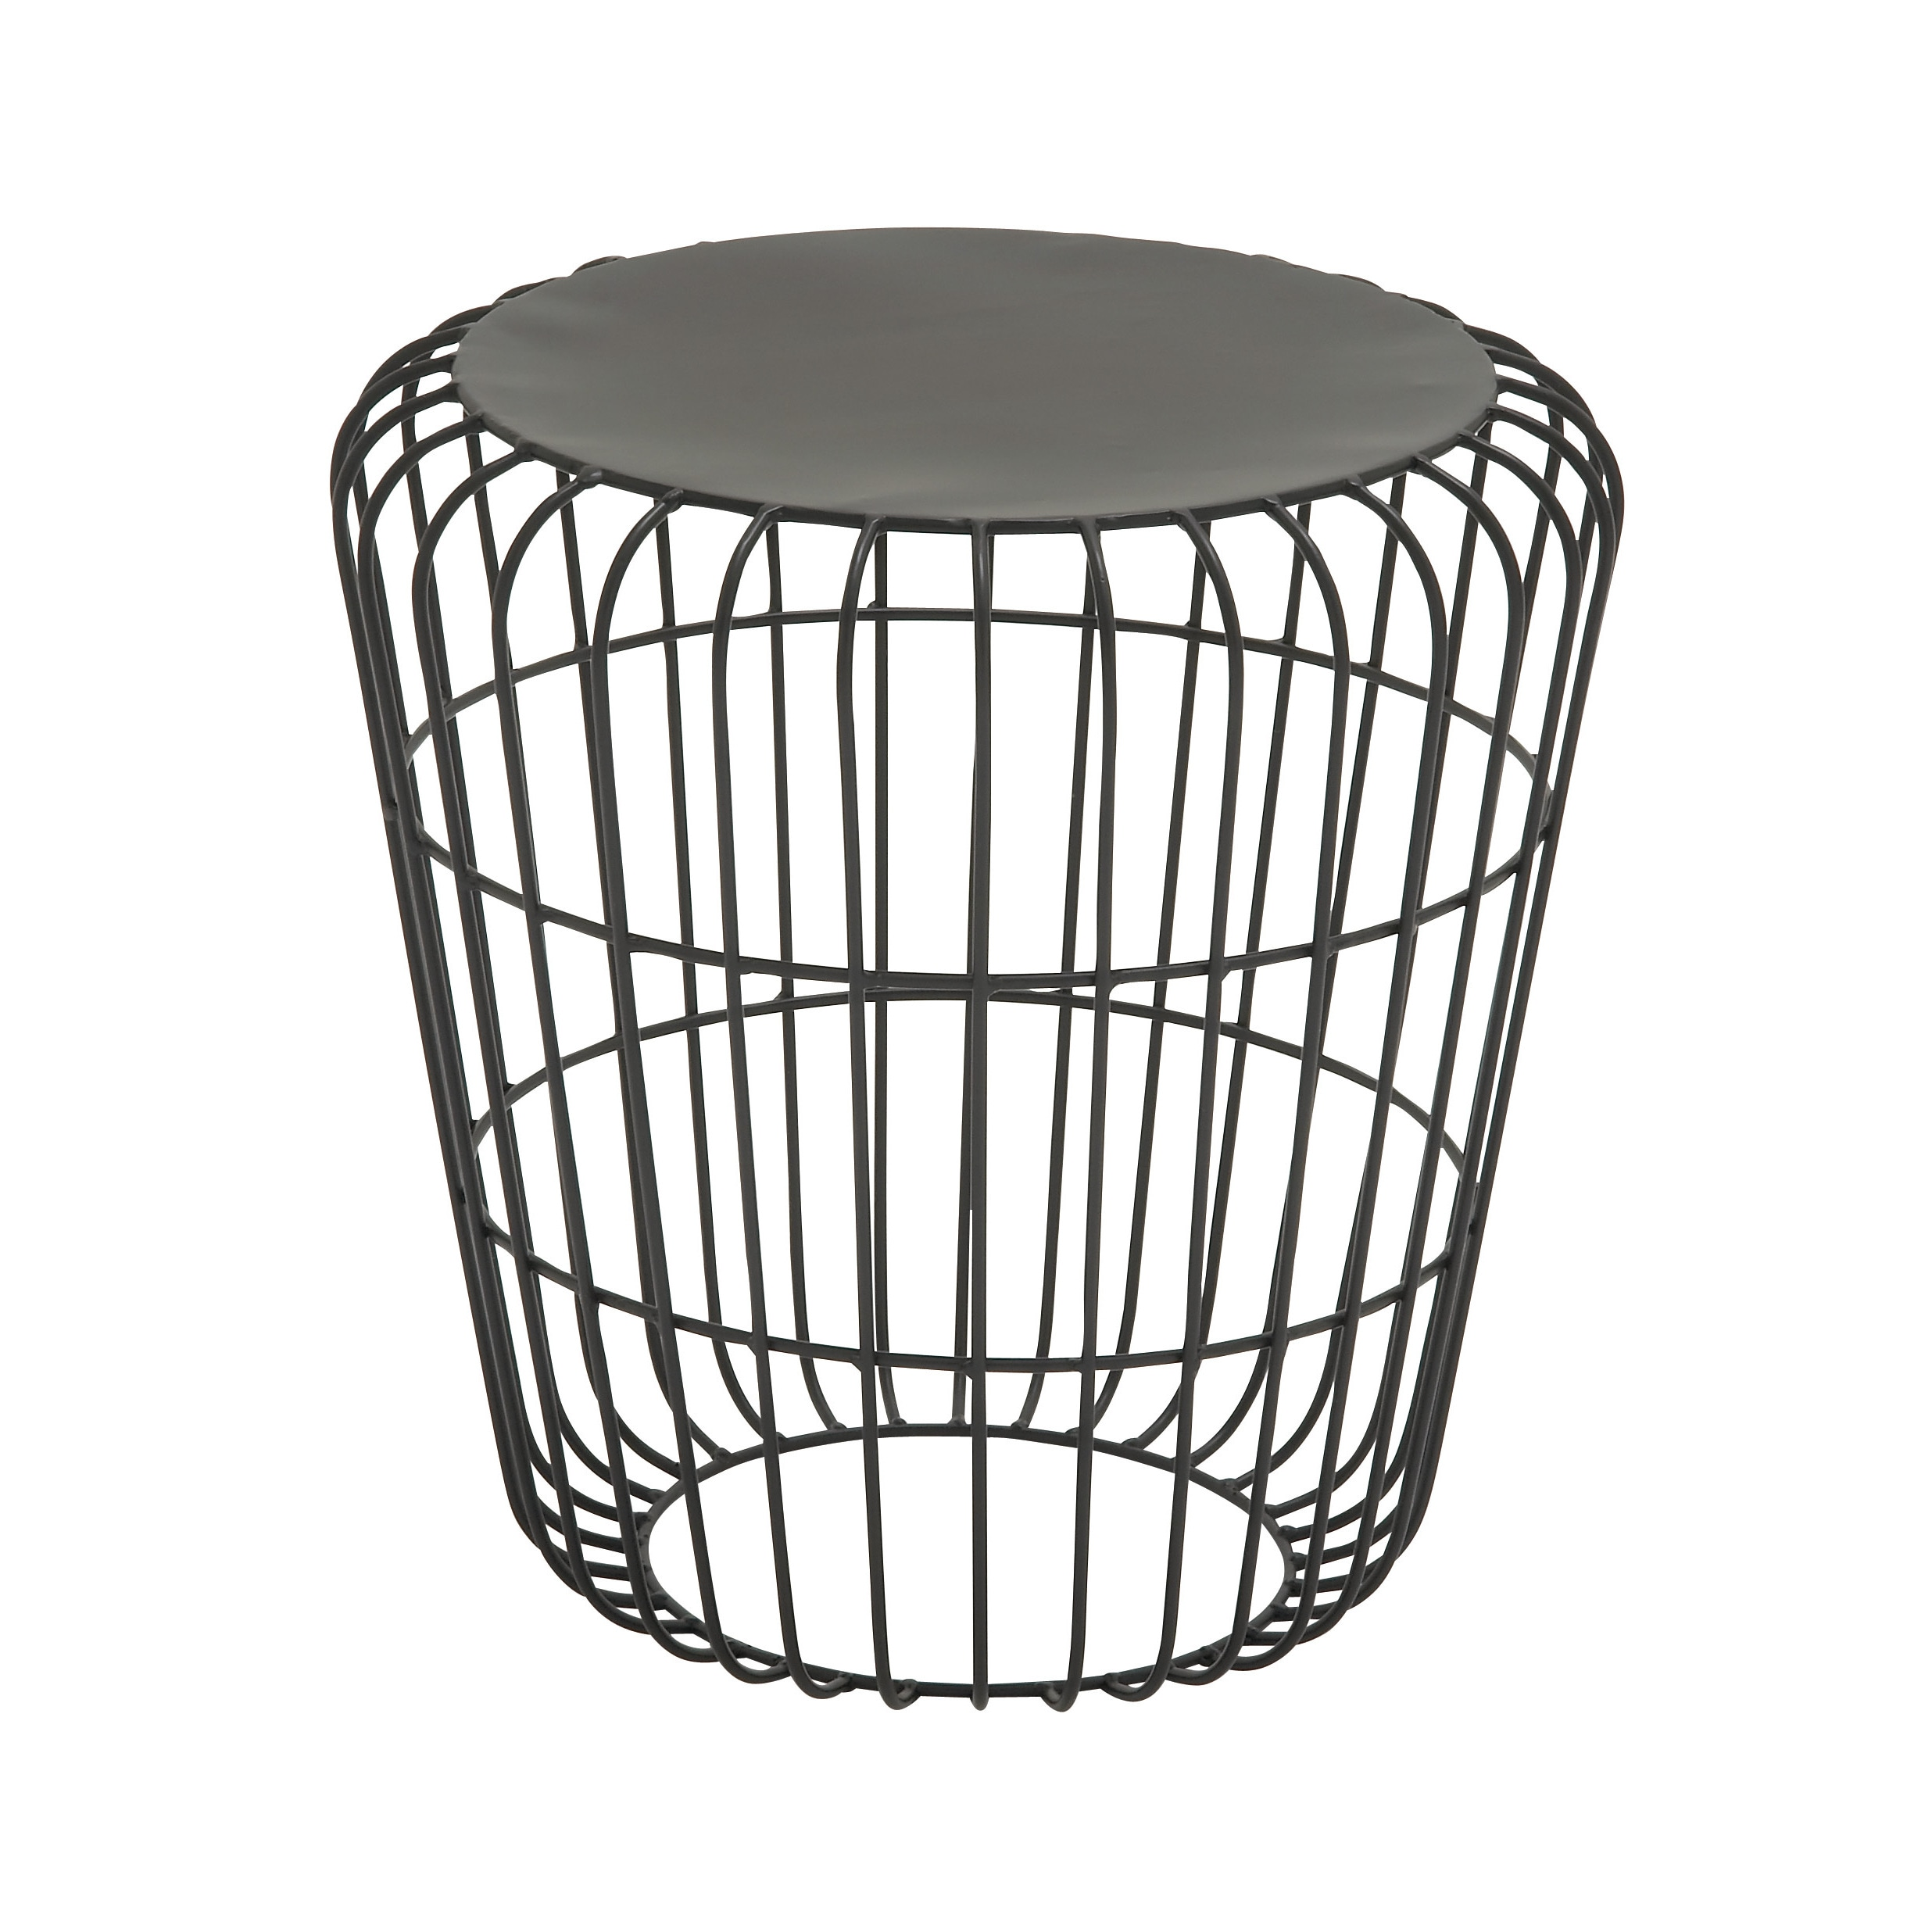 Modern End Side Table Heavy Duty Iron Wire Base Round Tabletop Black Finish